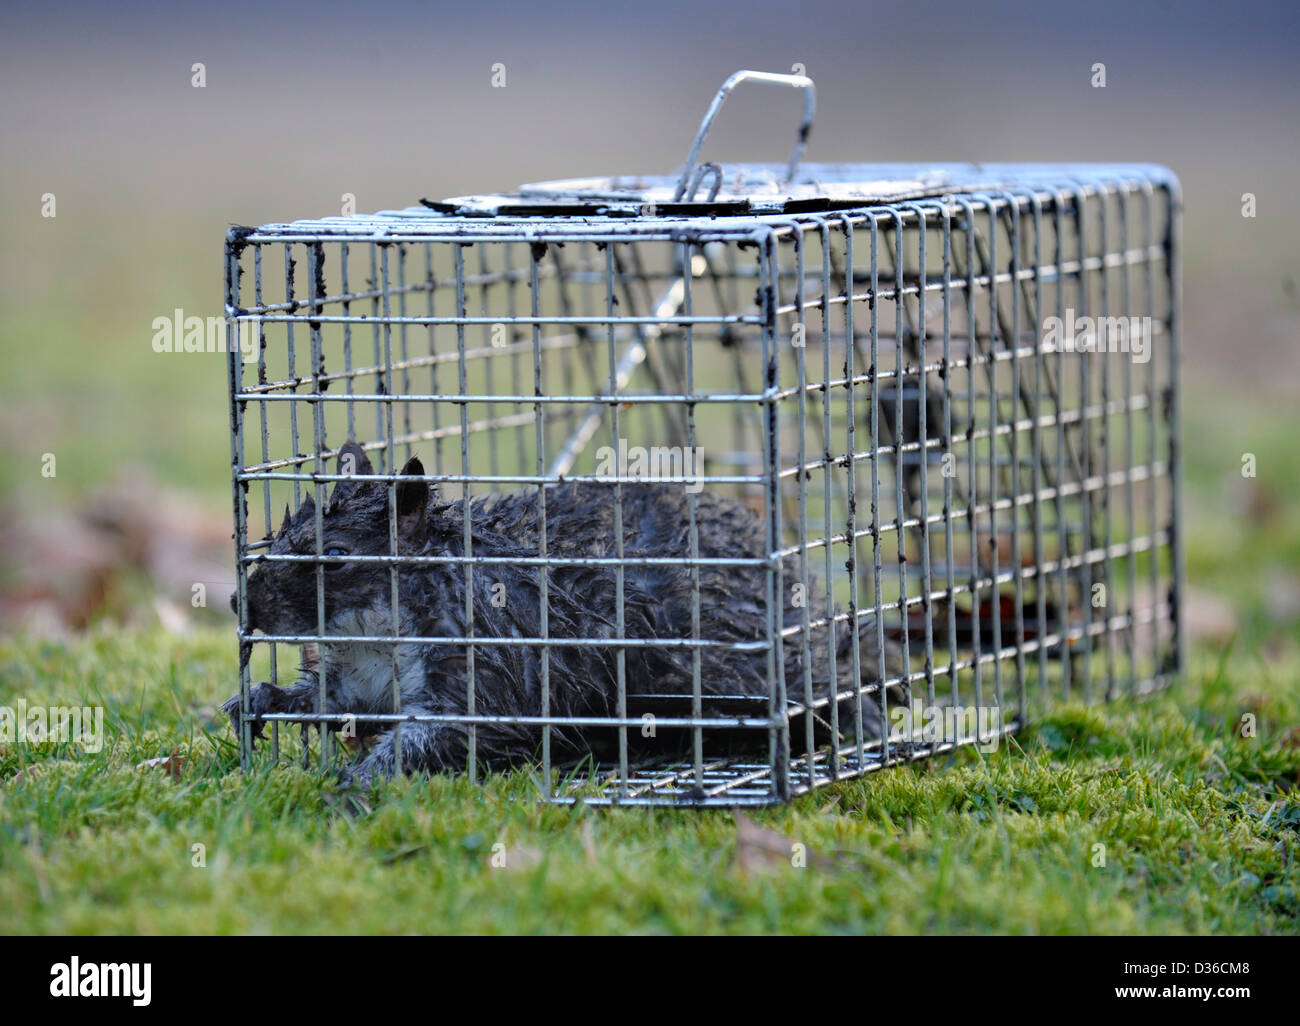 grey squirrel in humane trap, cage - Stock Image